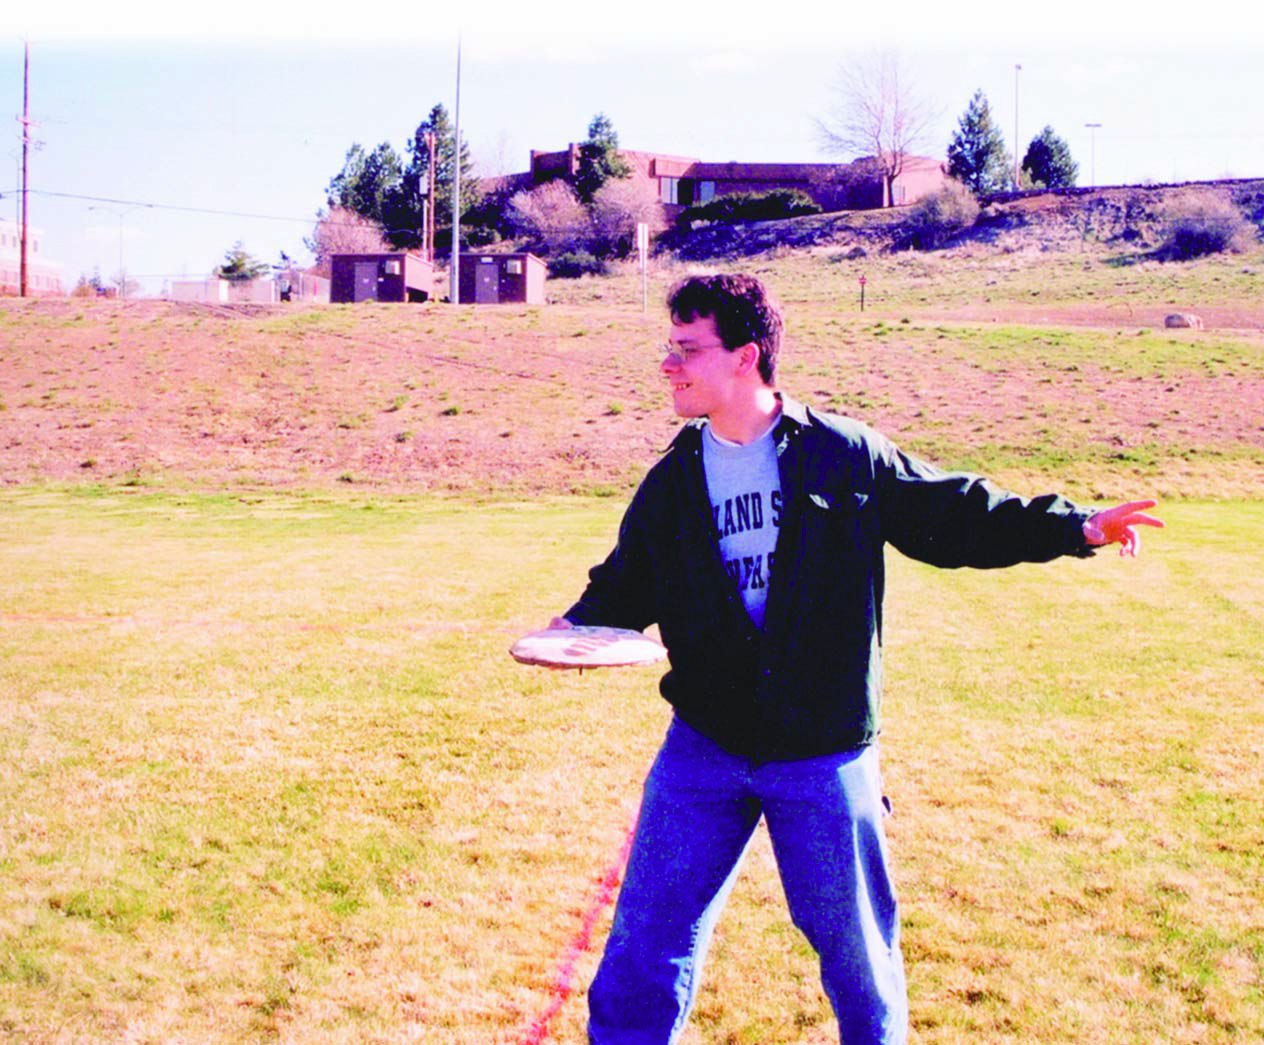 A student takes a concrete frisbee for a test run.